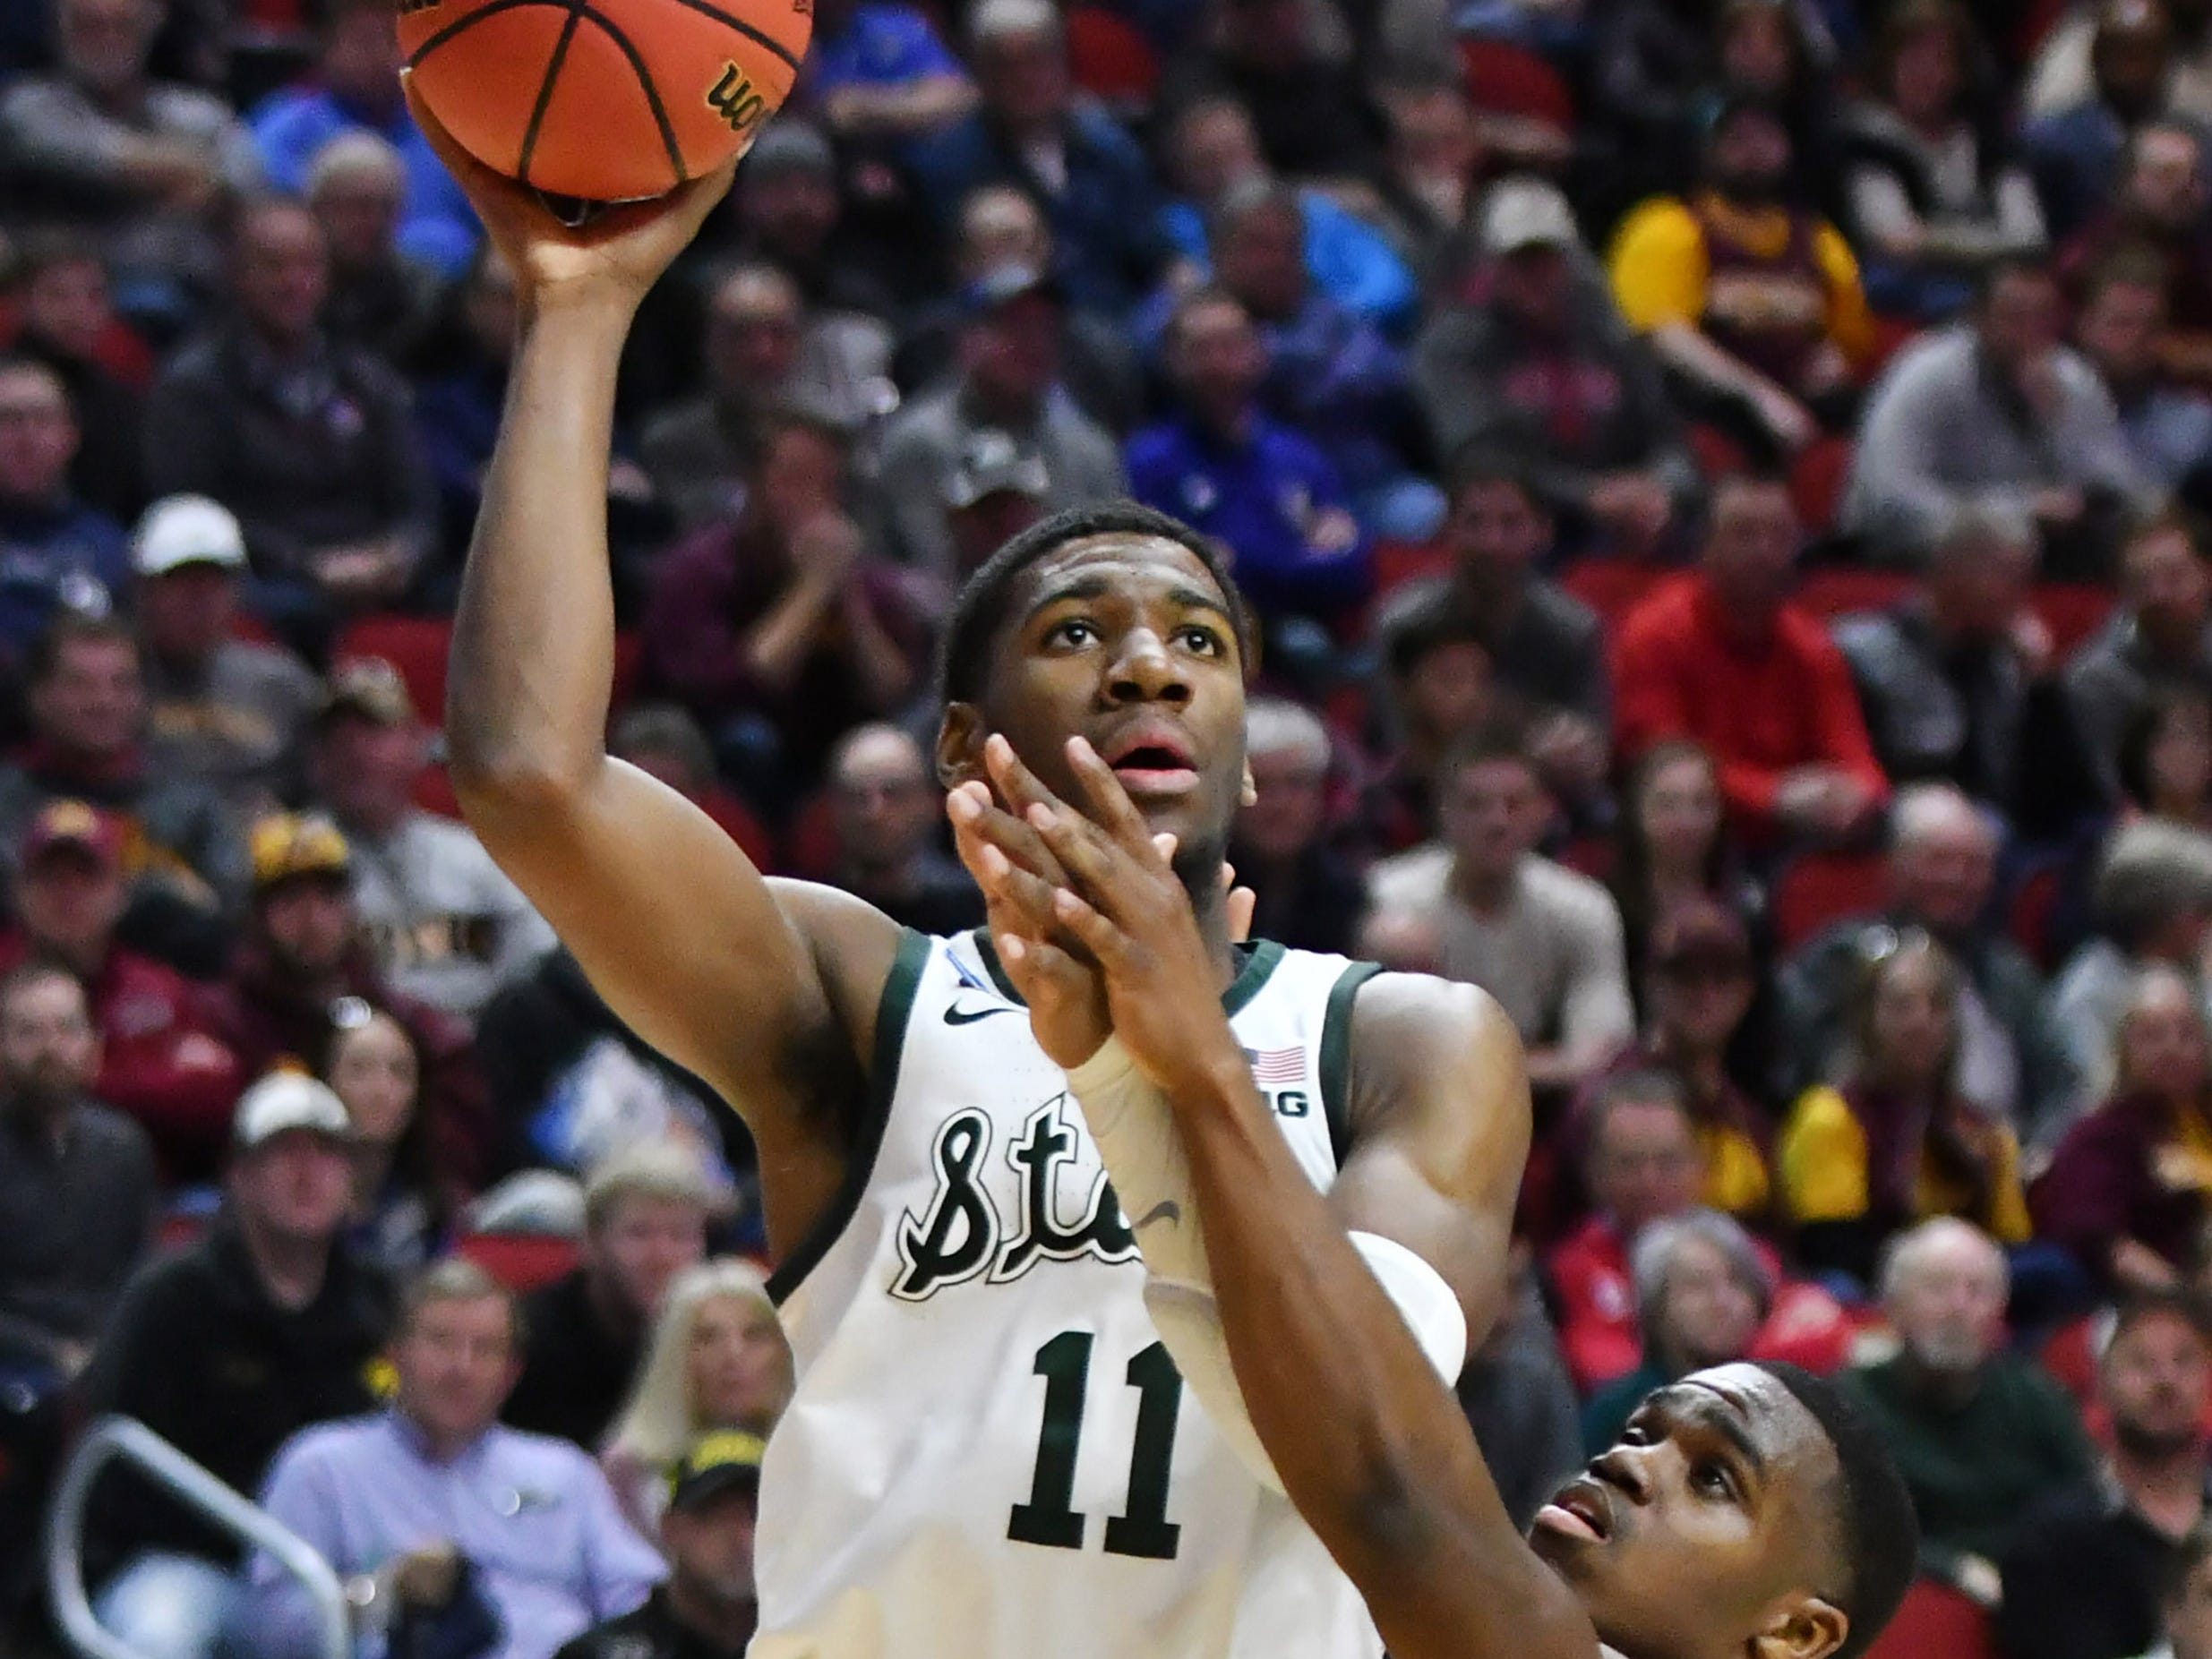 Bradley guard Darrell Brown (5) defends a shot by Michigan State forward Aaron Henry (11) in the second half.